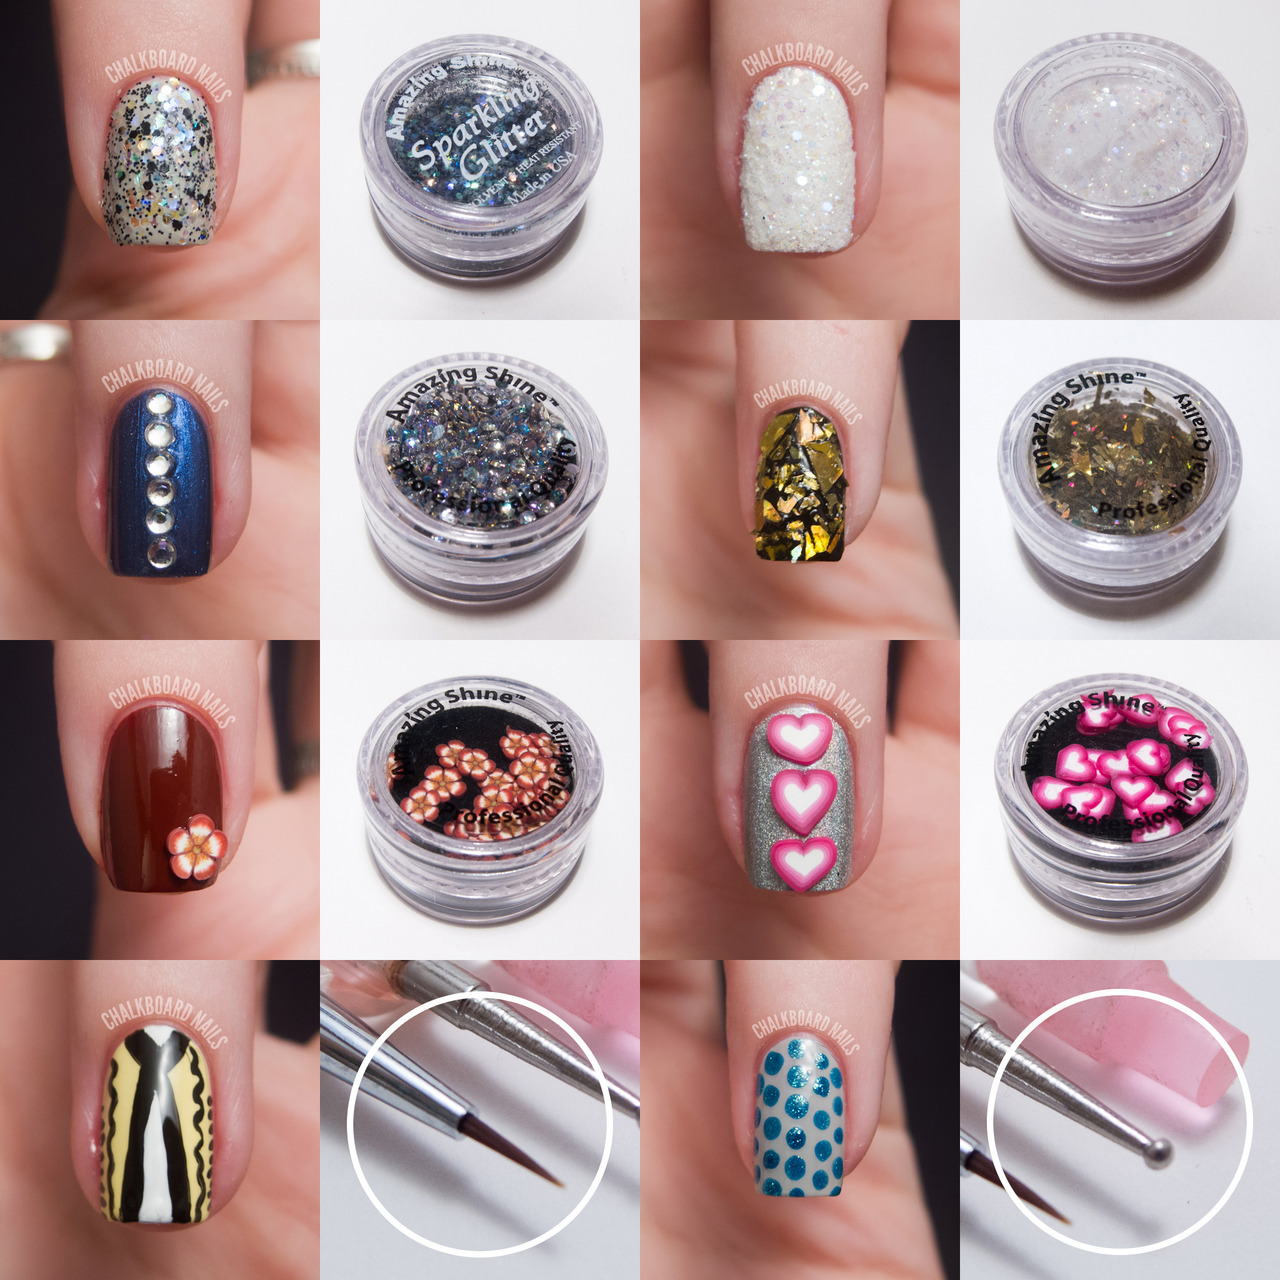 Amazing Shine Nail Art Kit Review This kit is currently only available on Walgreens.com. Check out the post on ChalkboardNails.com for more photos, a kit breakdown, and full review.